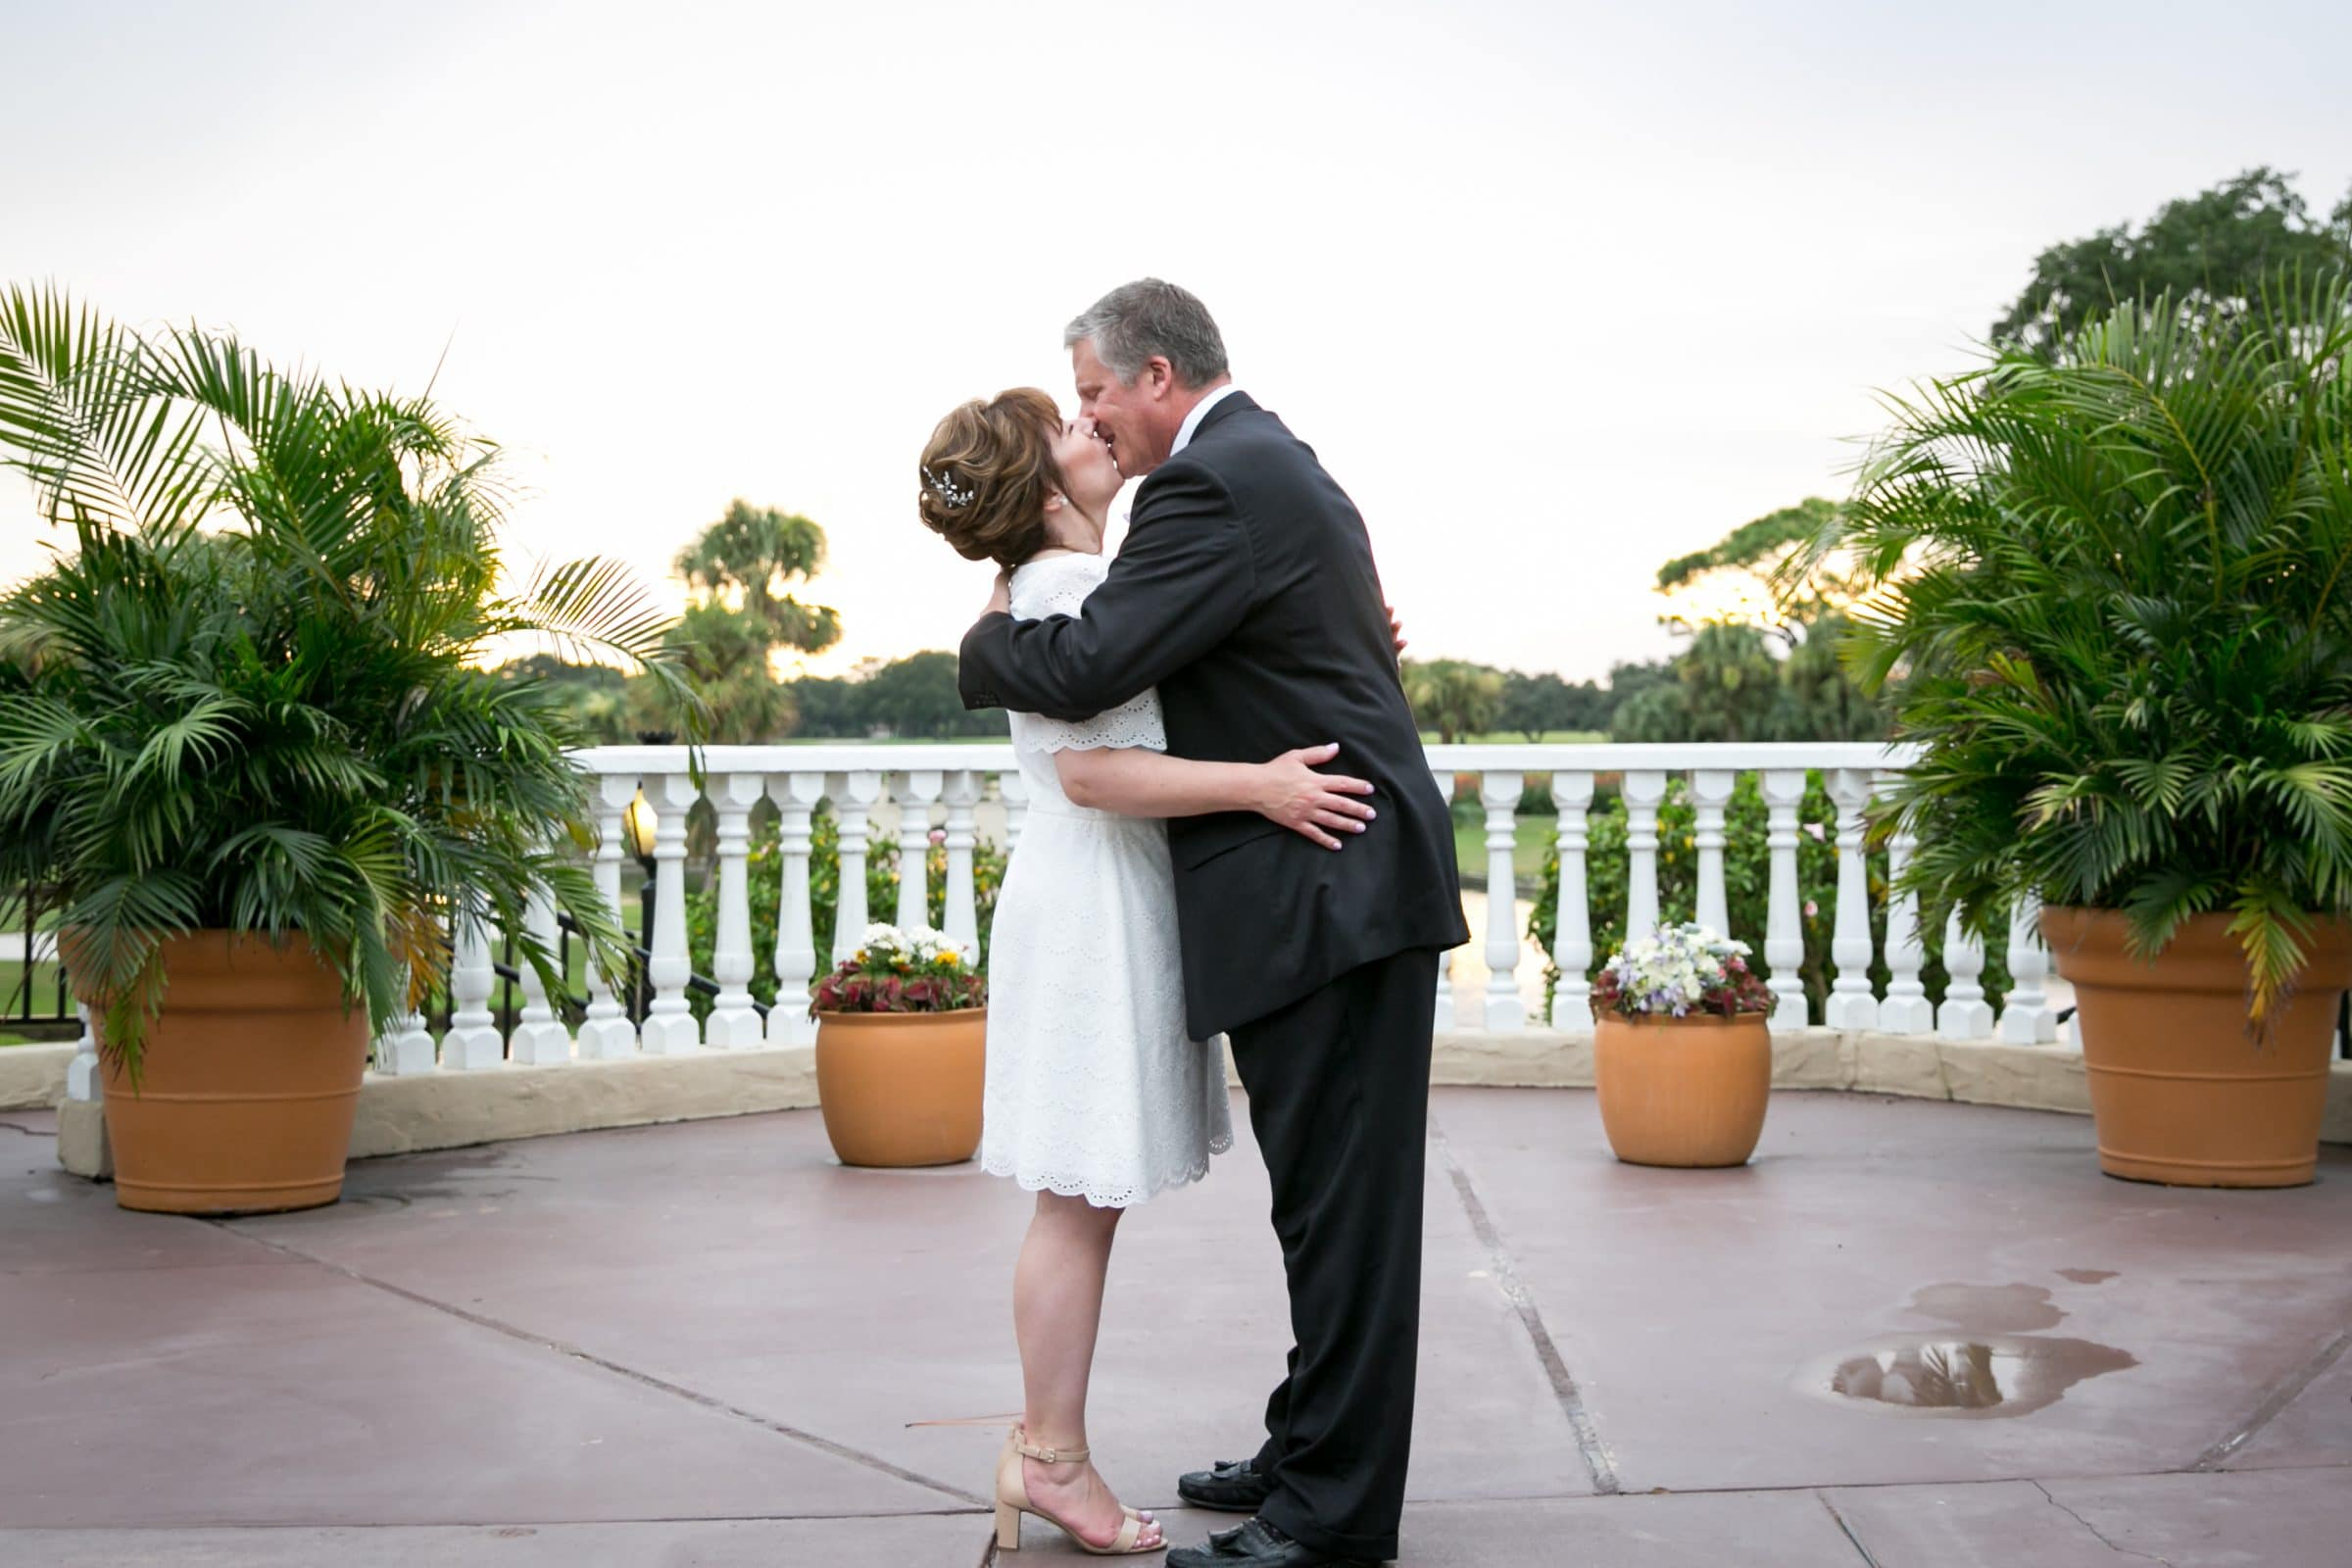 Bride and groom kissing in small courtyard